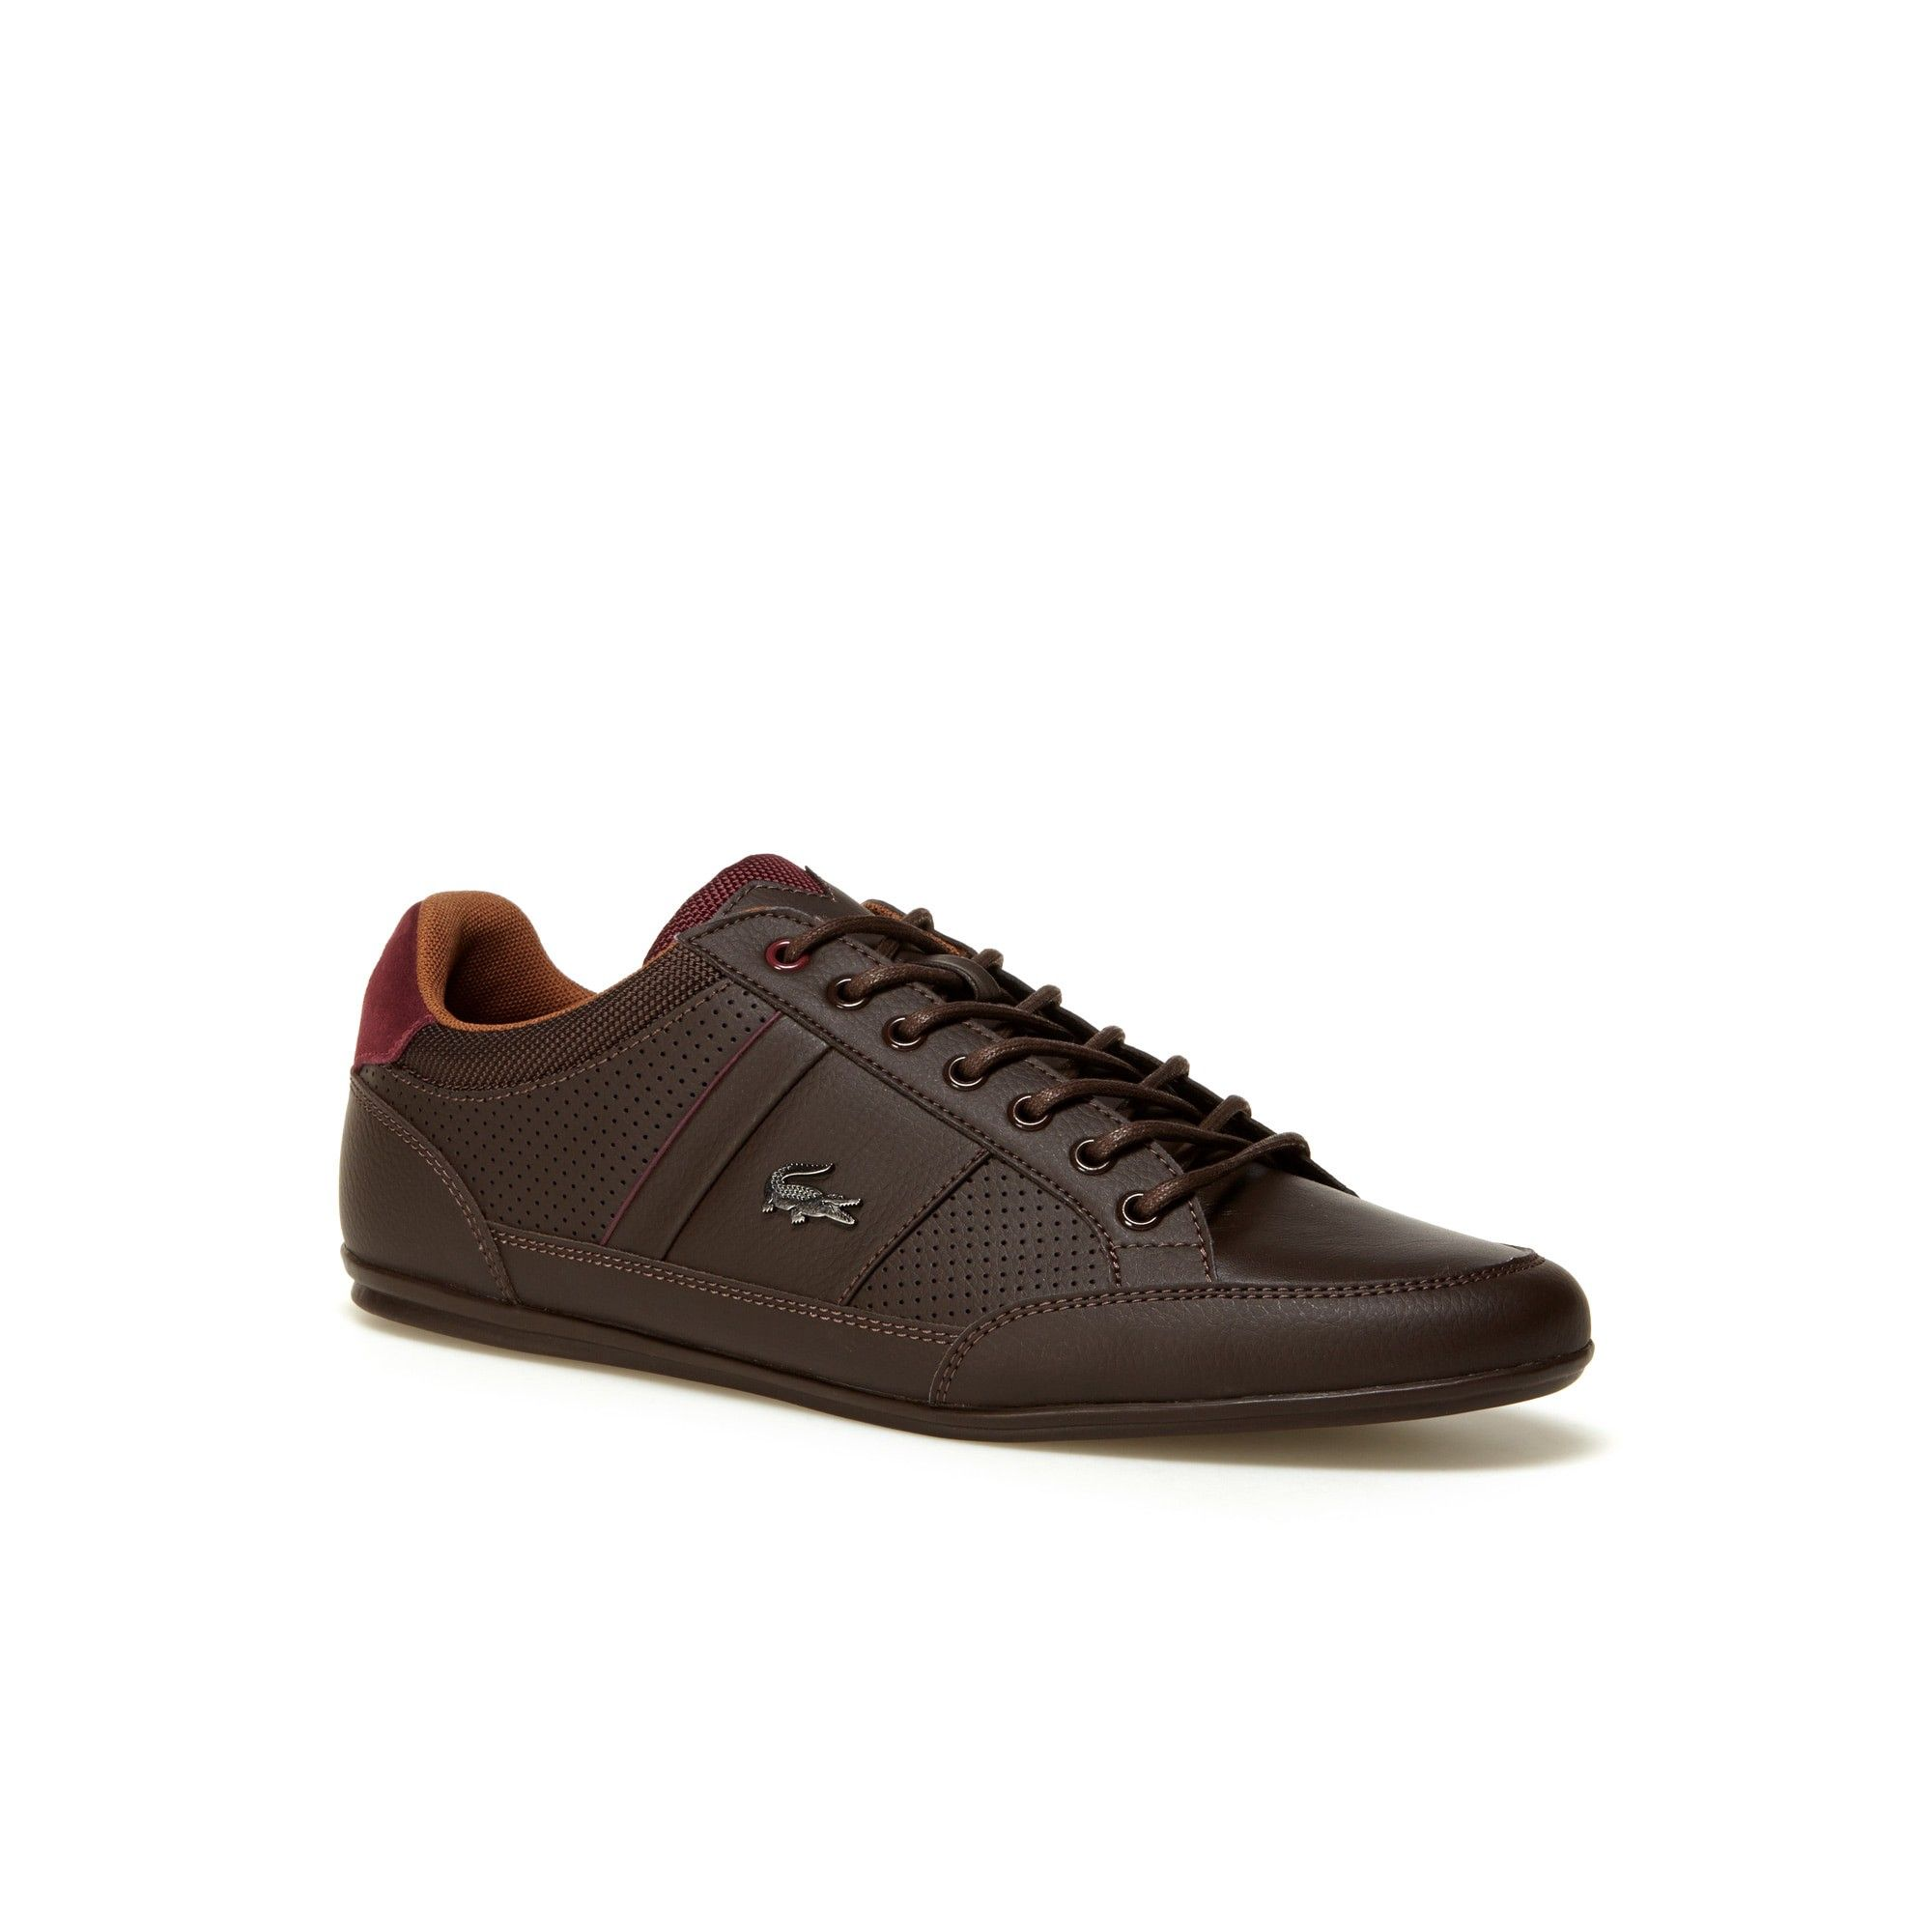 bc3d73f50 LACOSTE Men s Chaymon Leather Sneakers - dark brown tan.  lacoste  shoes